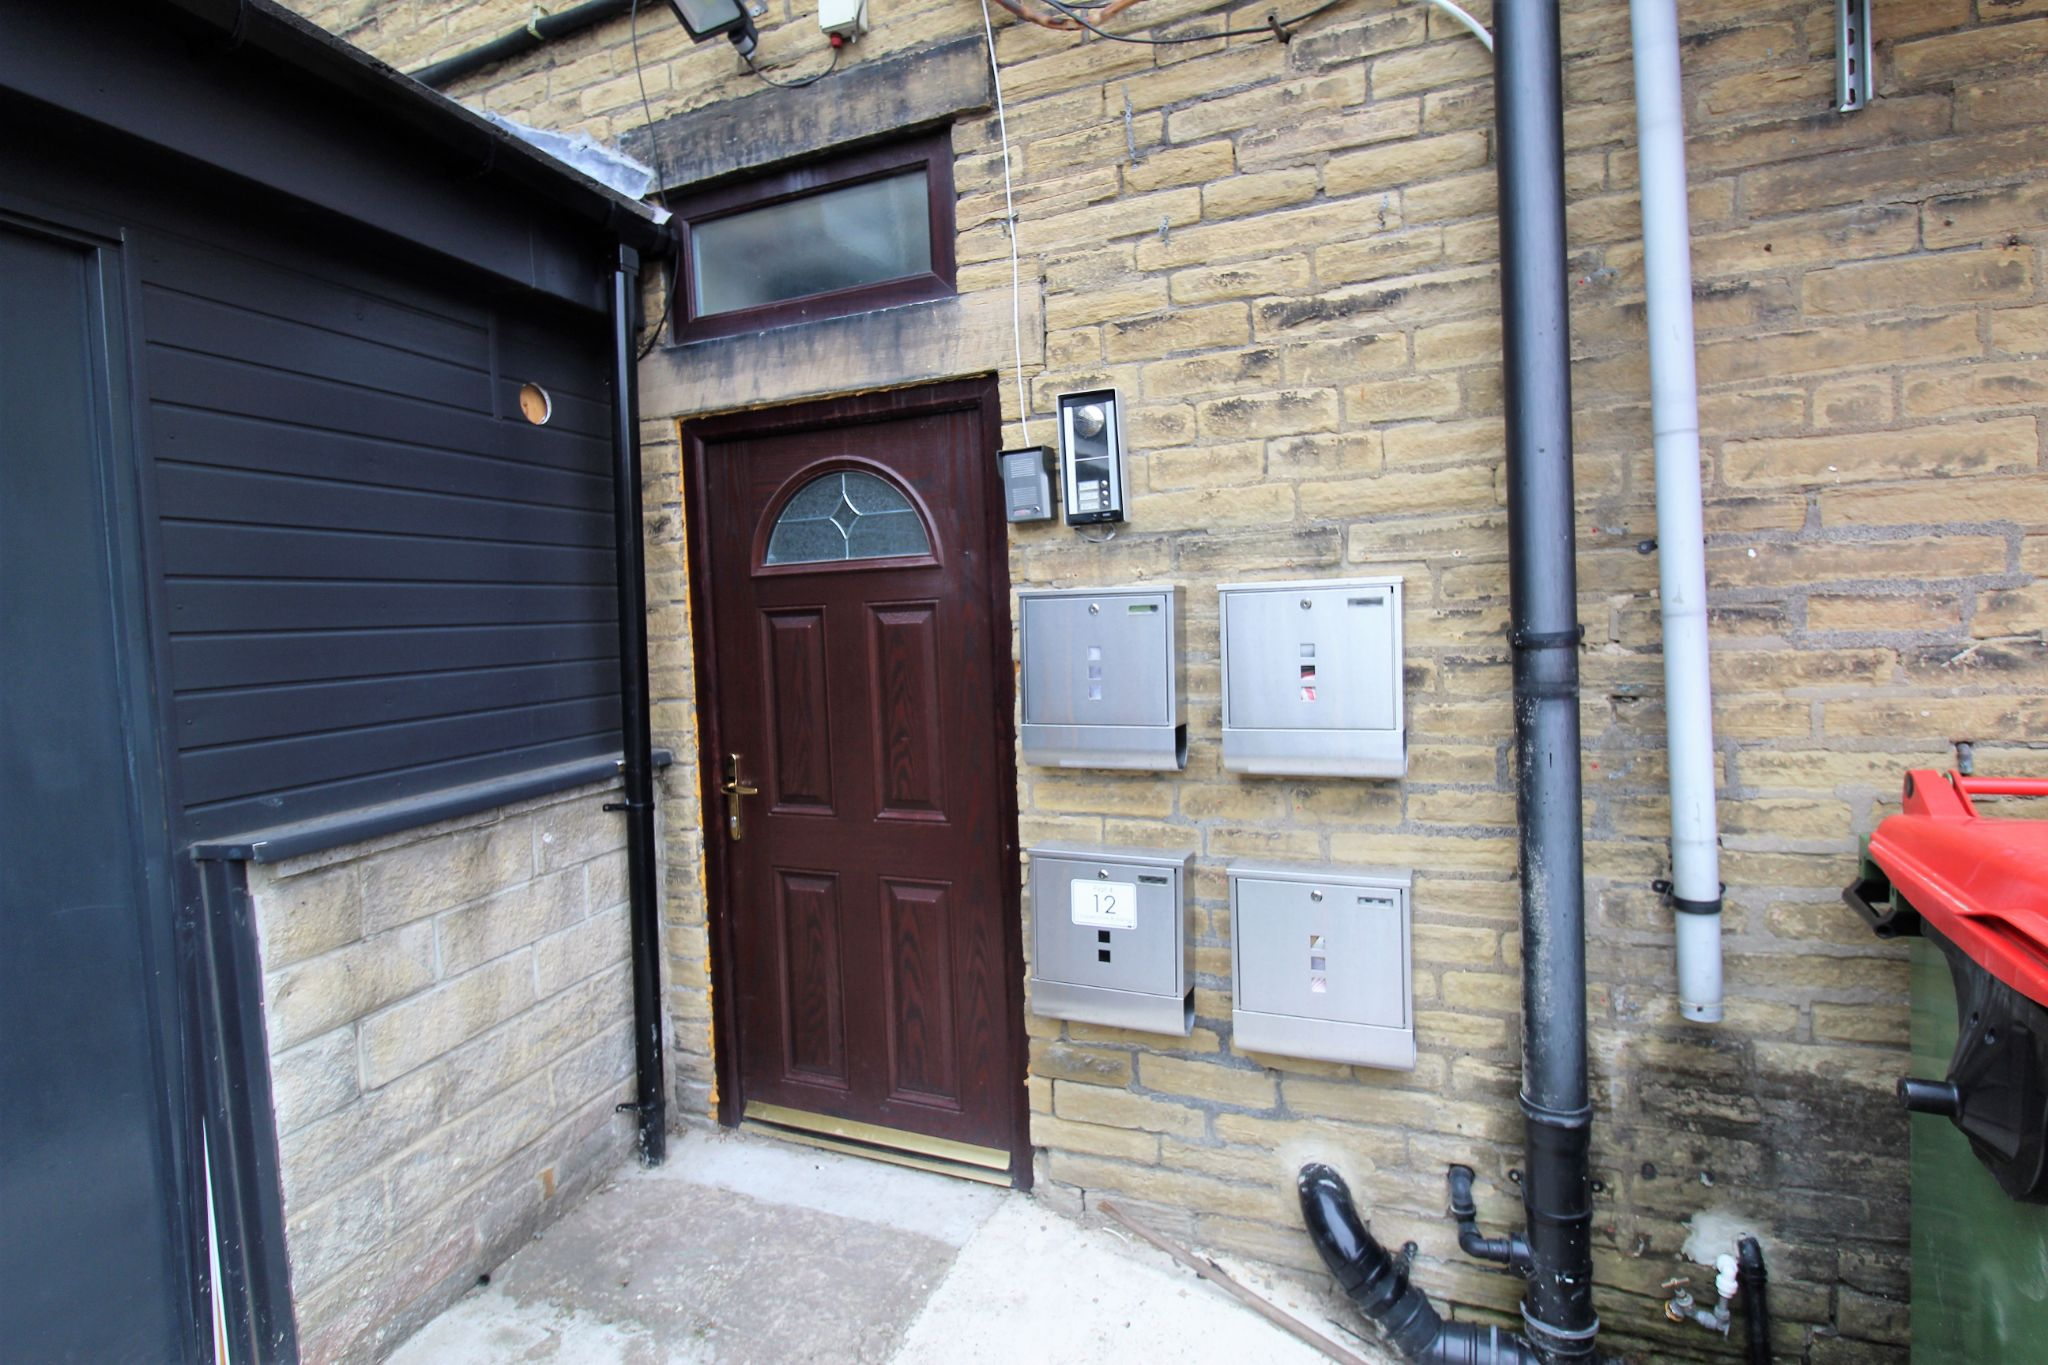 1 bedroom bedsit flat/apartment Let in Brighouse - Communal entrance with intercom entry